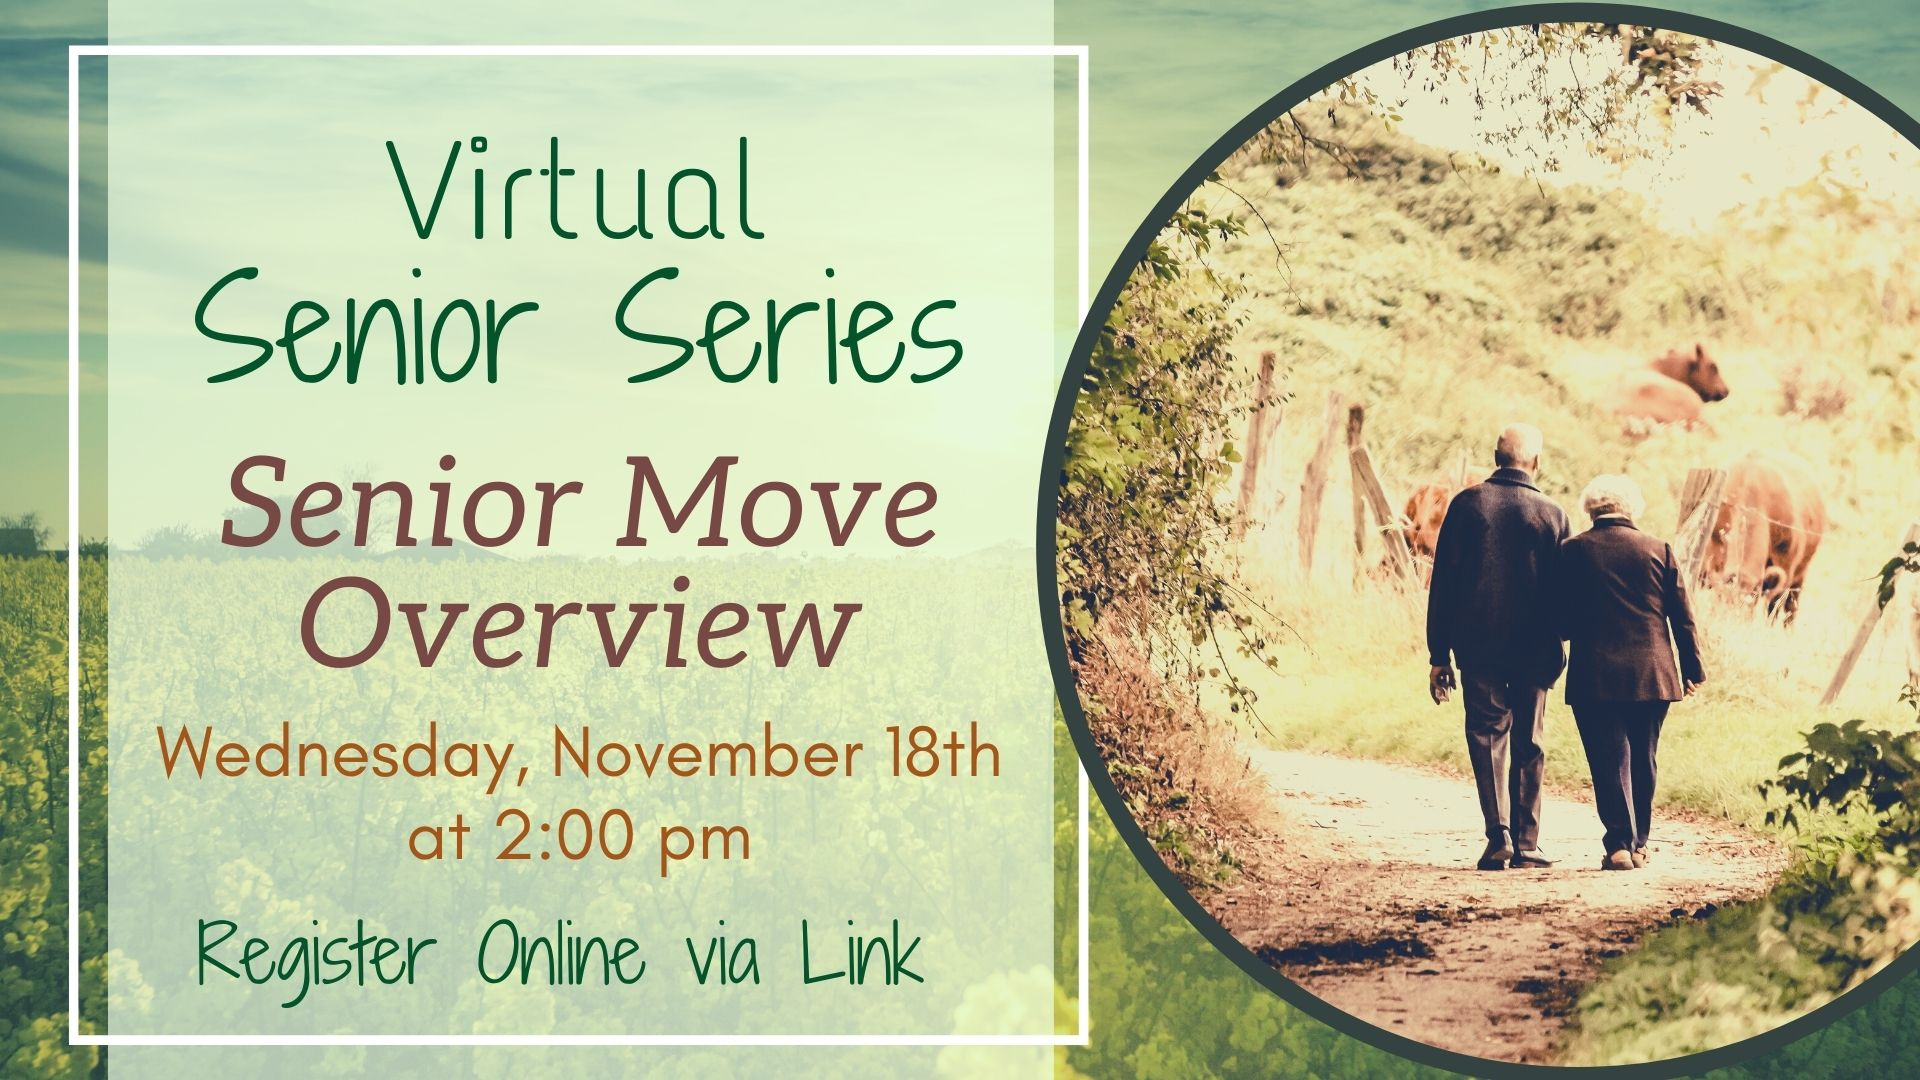 Virtual Senior Series: Senior Move Overview